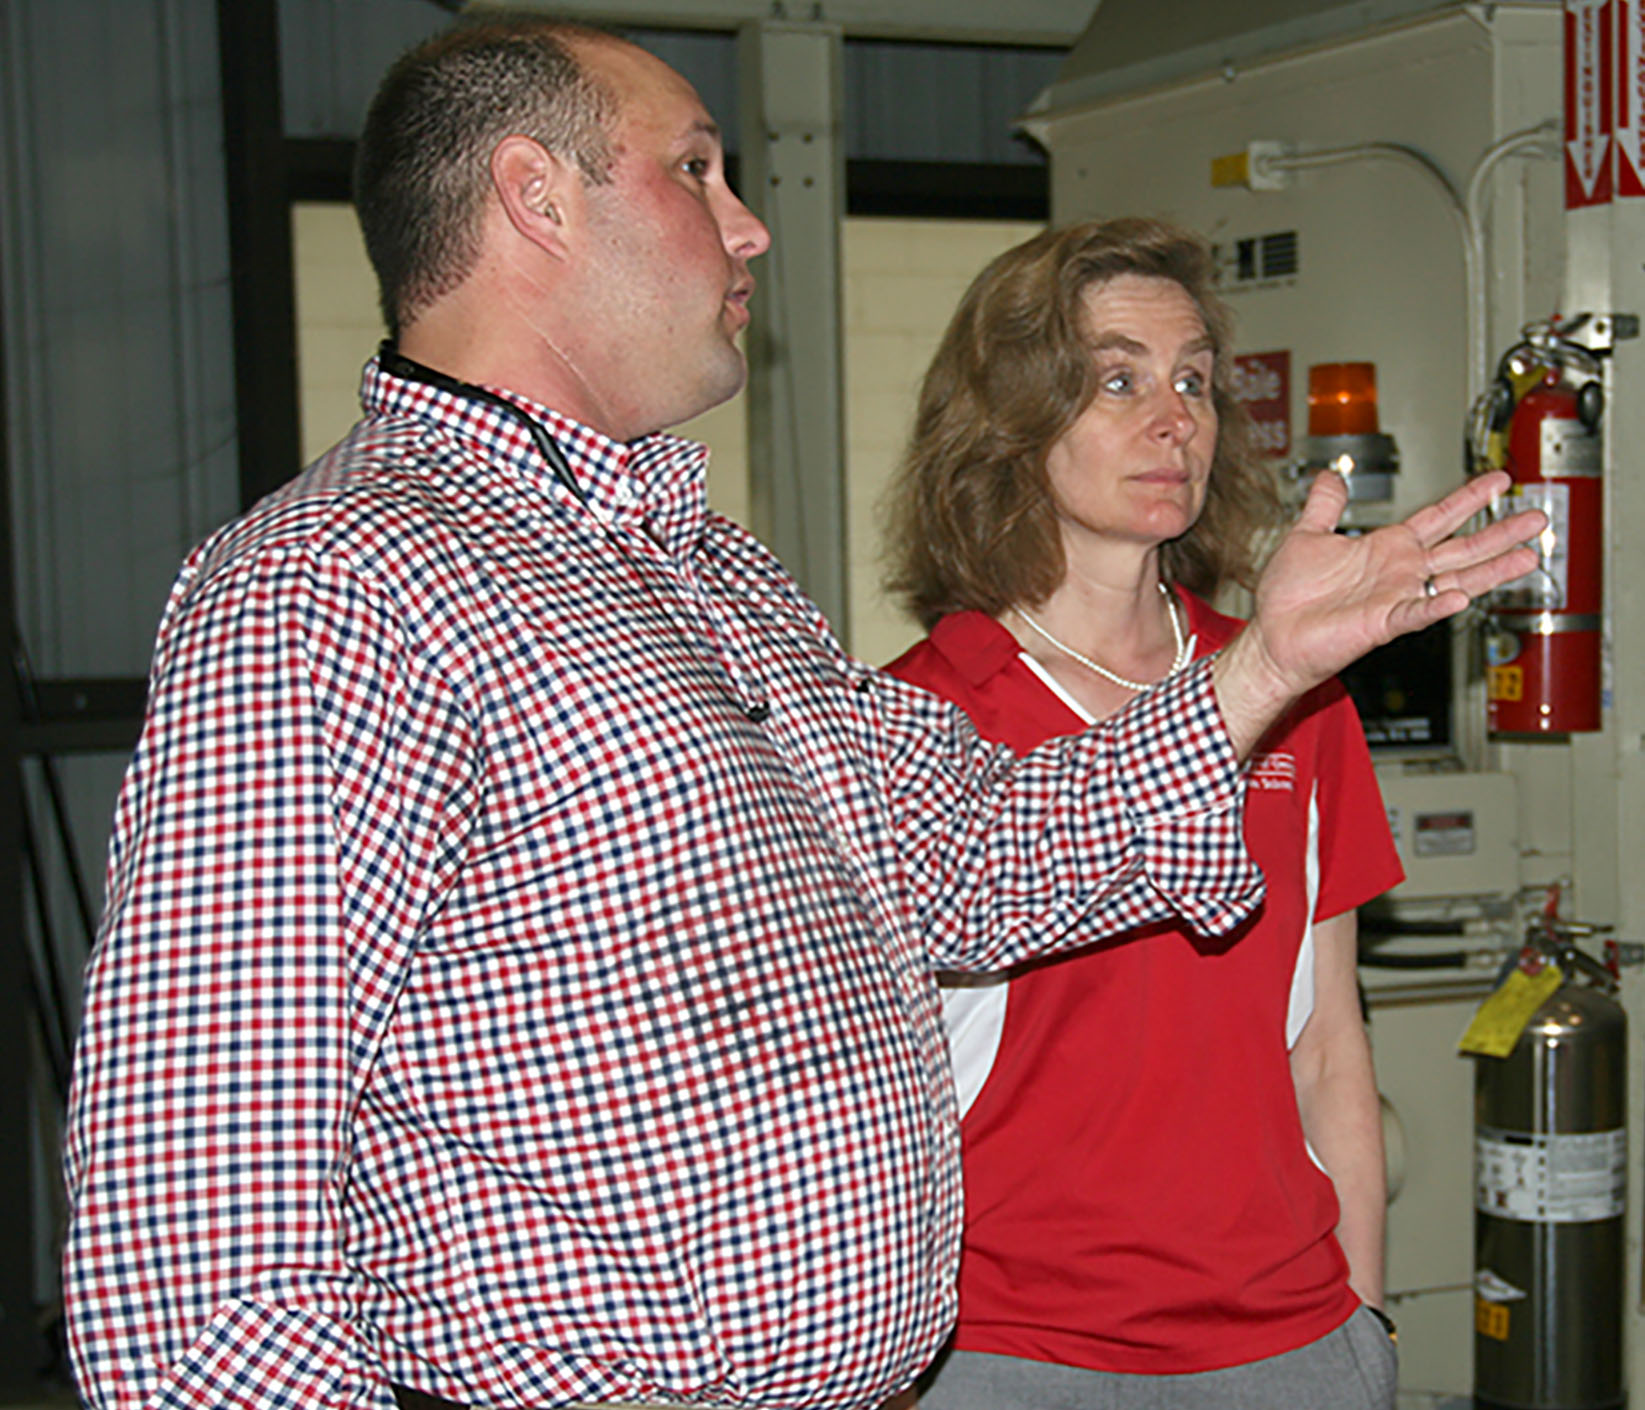 UGA Extension cotton agronomist Jared Whitaker speaks with Pamela Whitten, UGA provost, about cotton and its importance to Georgia during Whitten's visit on Thursday, March 17.